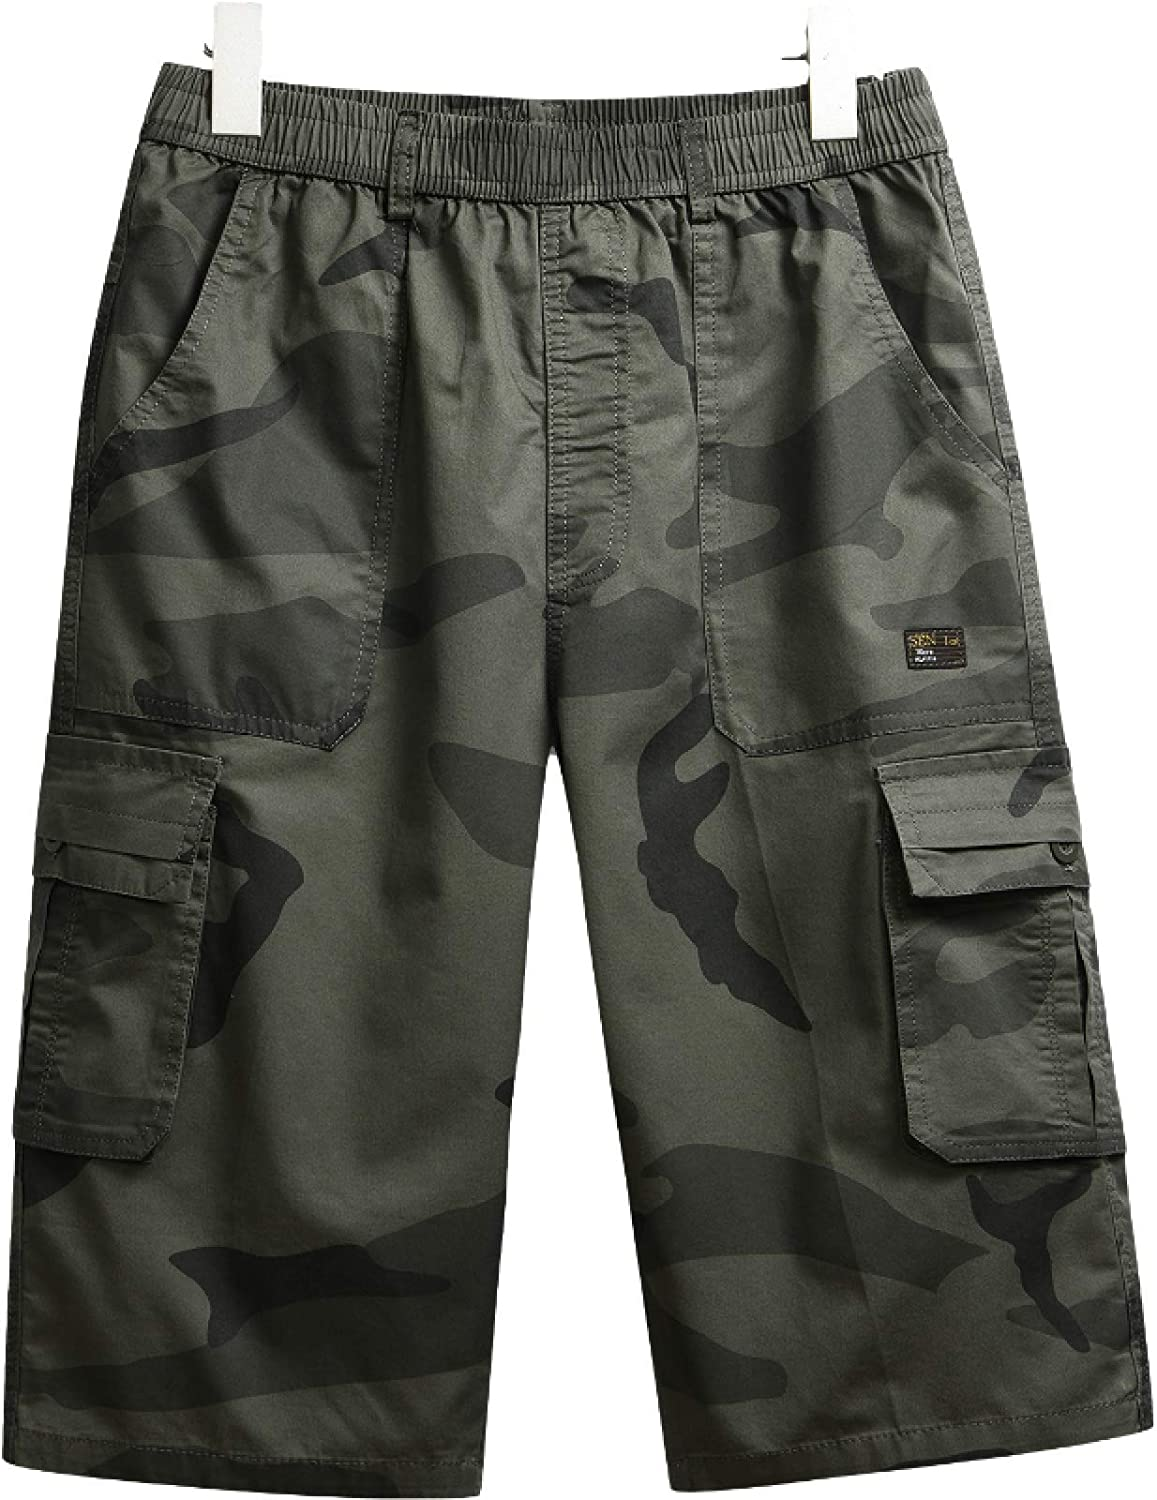 Wantess Men's Camouflage Cargo Shorts Summer Loose Large Size Comfortable Breathable